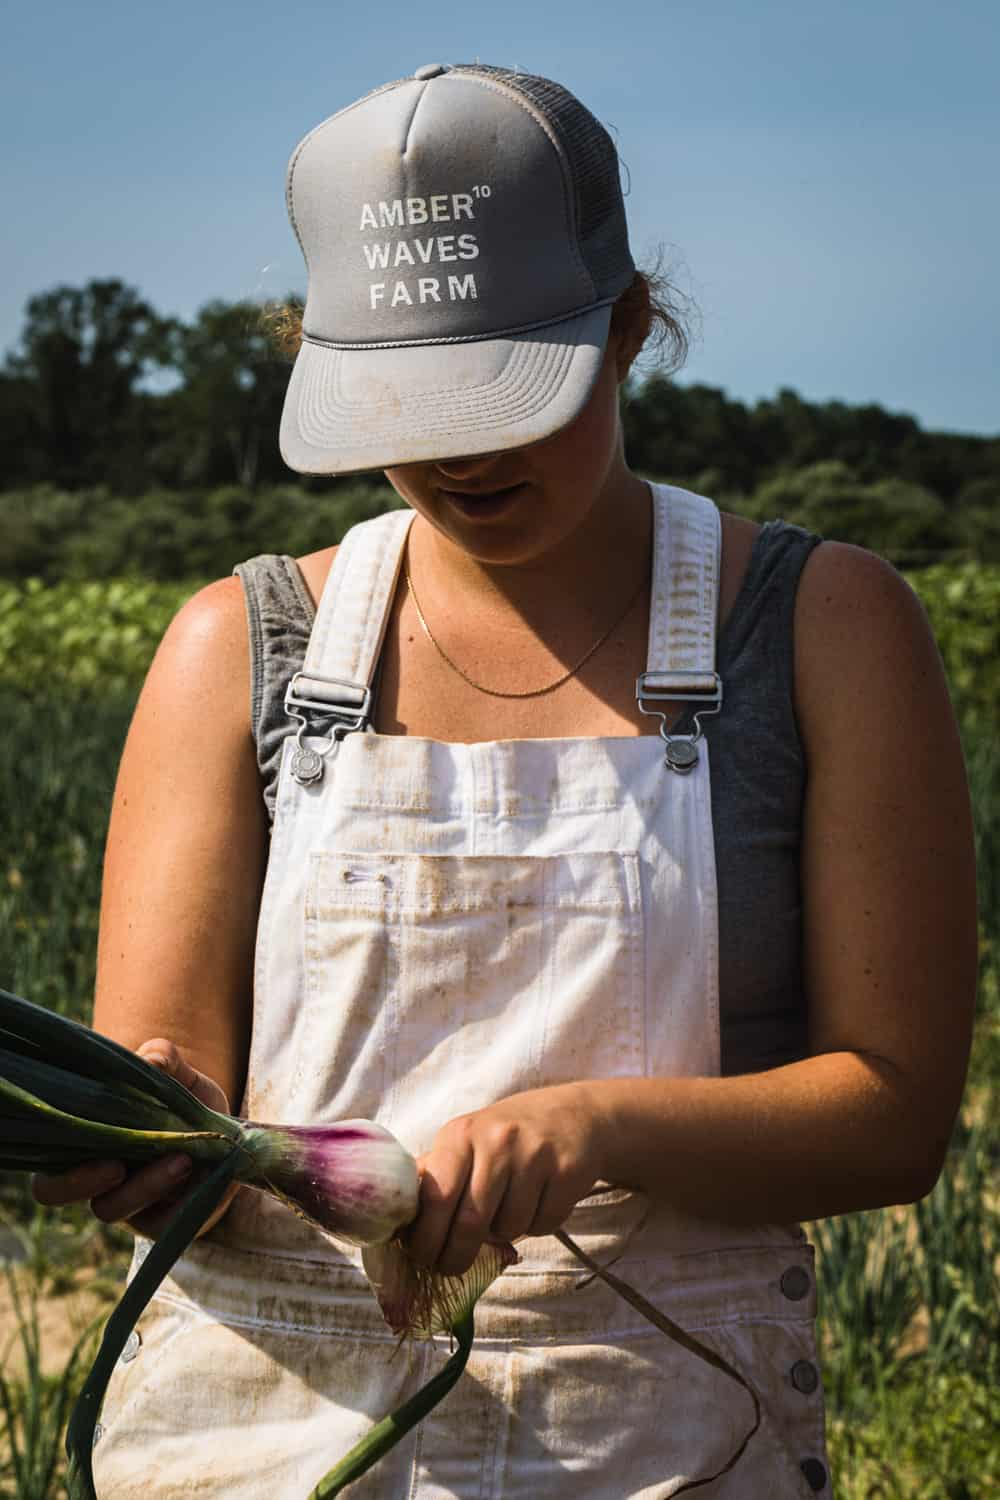 Amber waves staff harvesting onions.